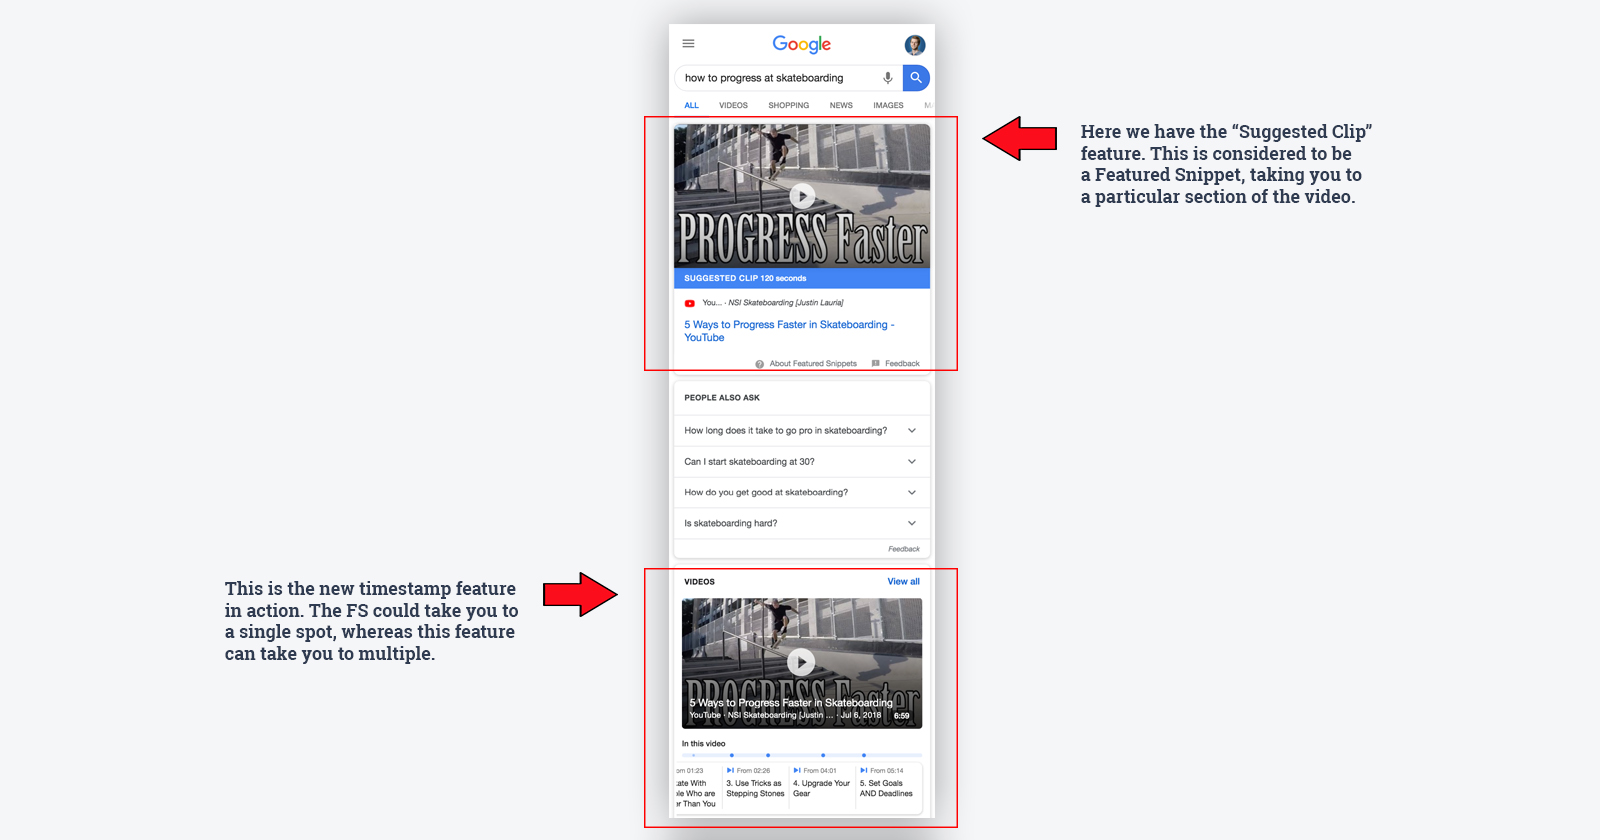 suggested clip with featured snippet vs key moments